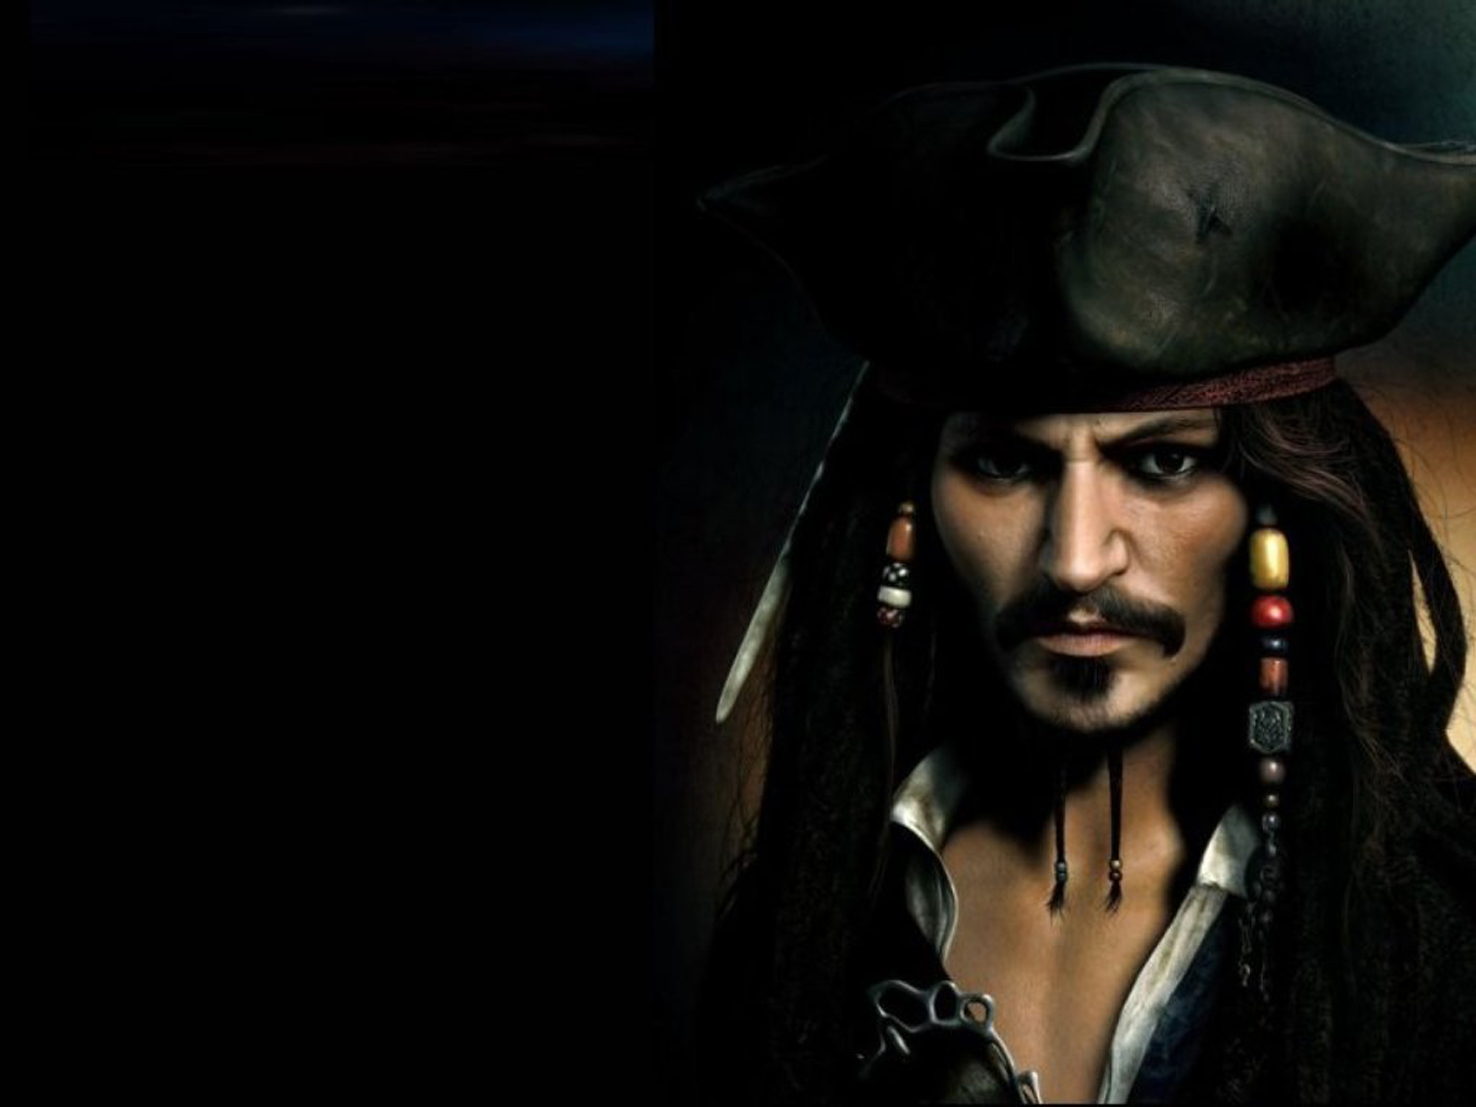 Captain Jack Sparrow Wallpaper | Perfect Wallpaper